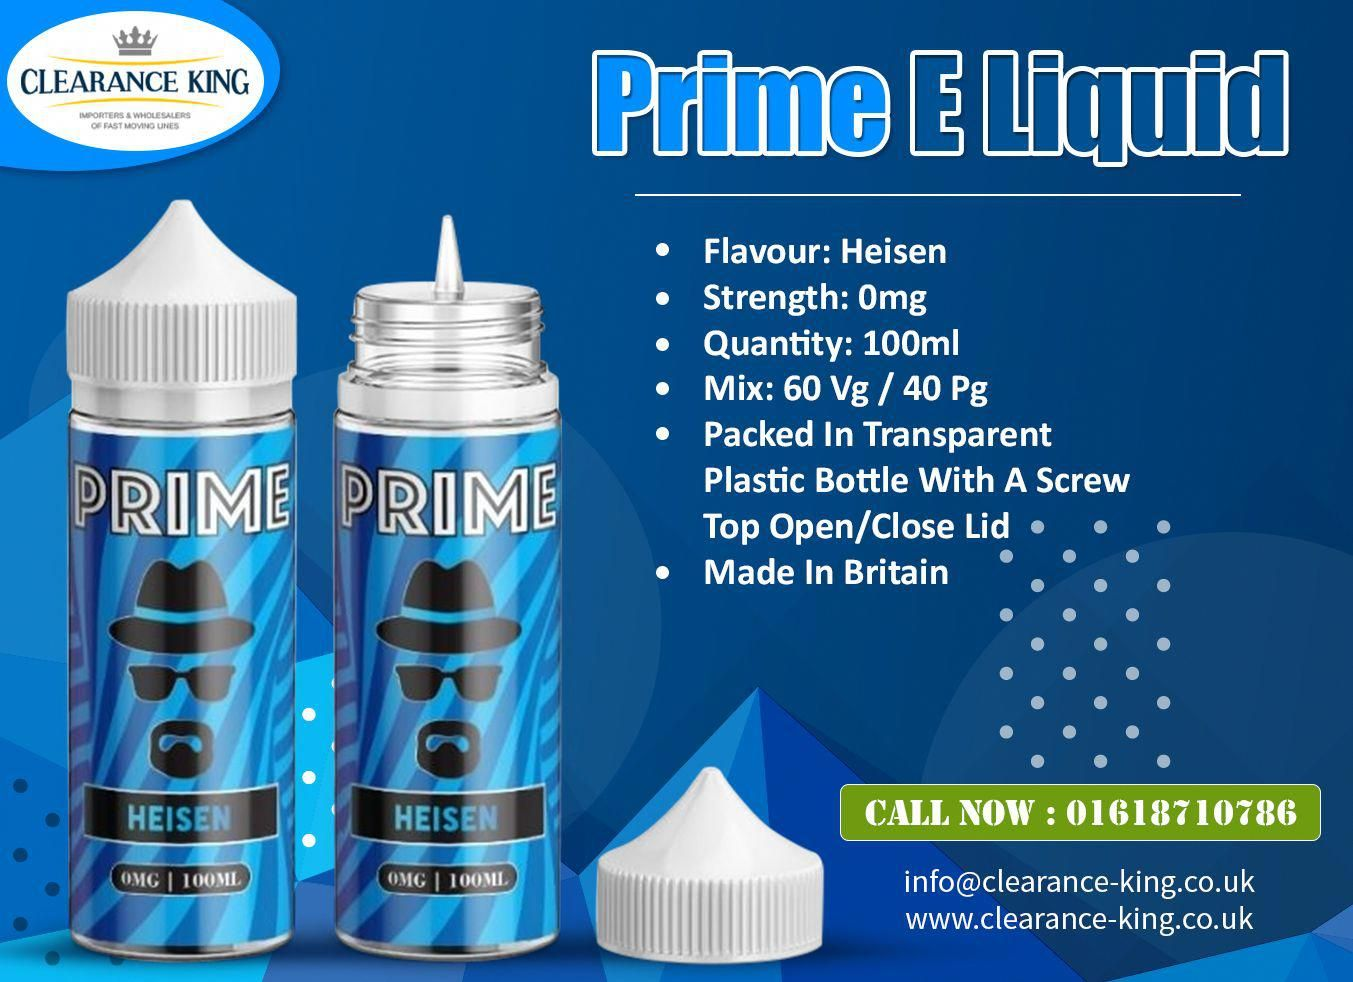 Wholesale Prime E Liquid Heisen 0mg 100ml Order Now Wholesalereliquid Eliquidwholesale Heisen Wholesaleruk Whole E Liquid Flavors Pound Shops Liquid